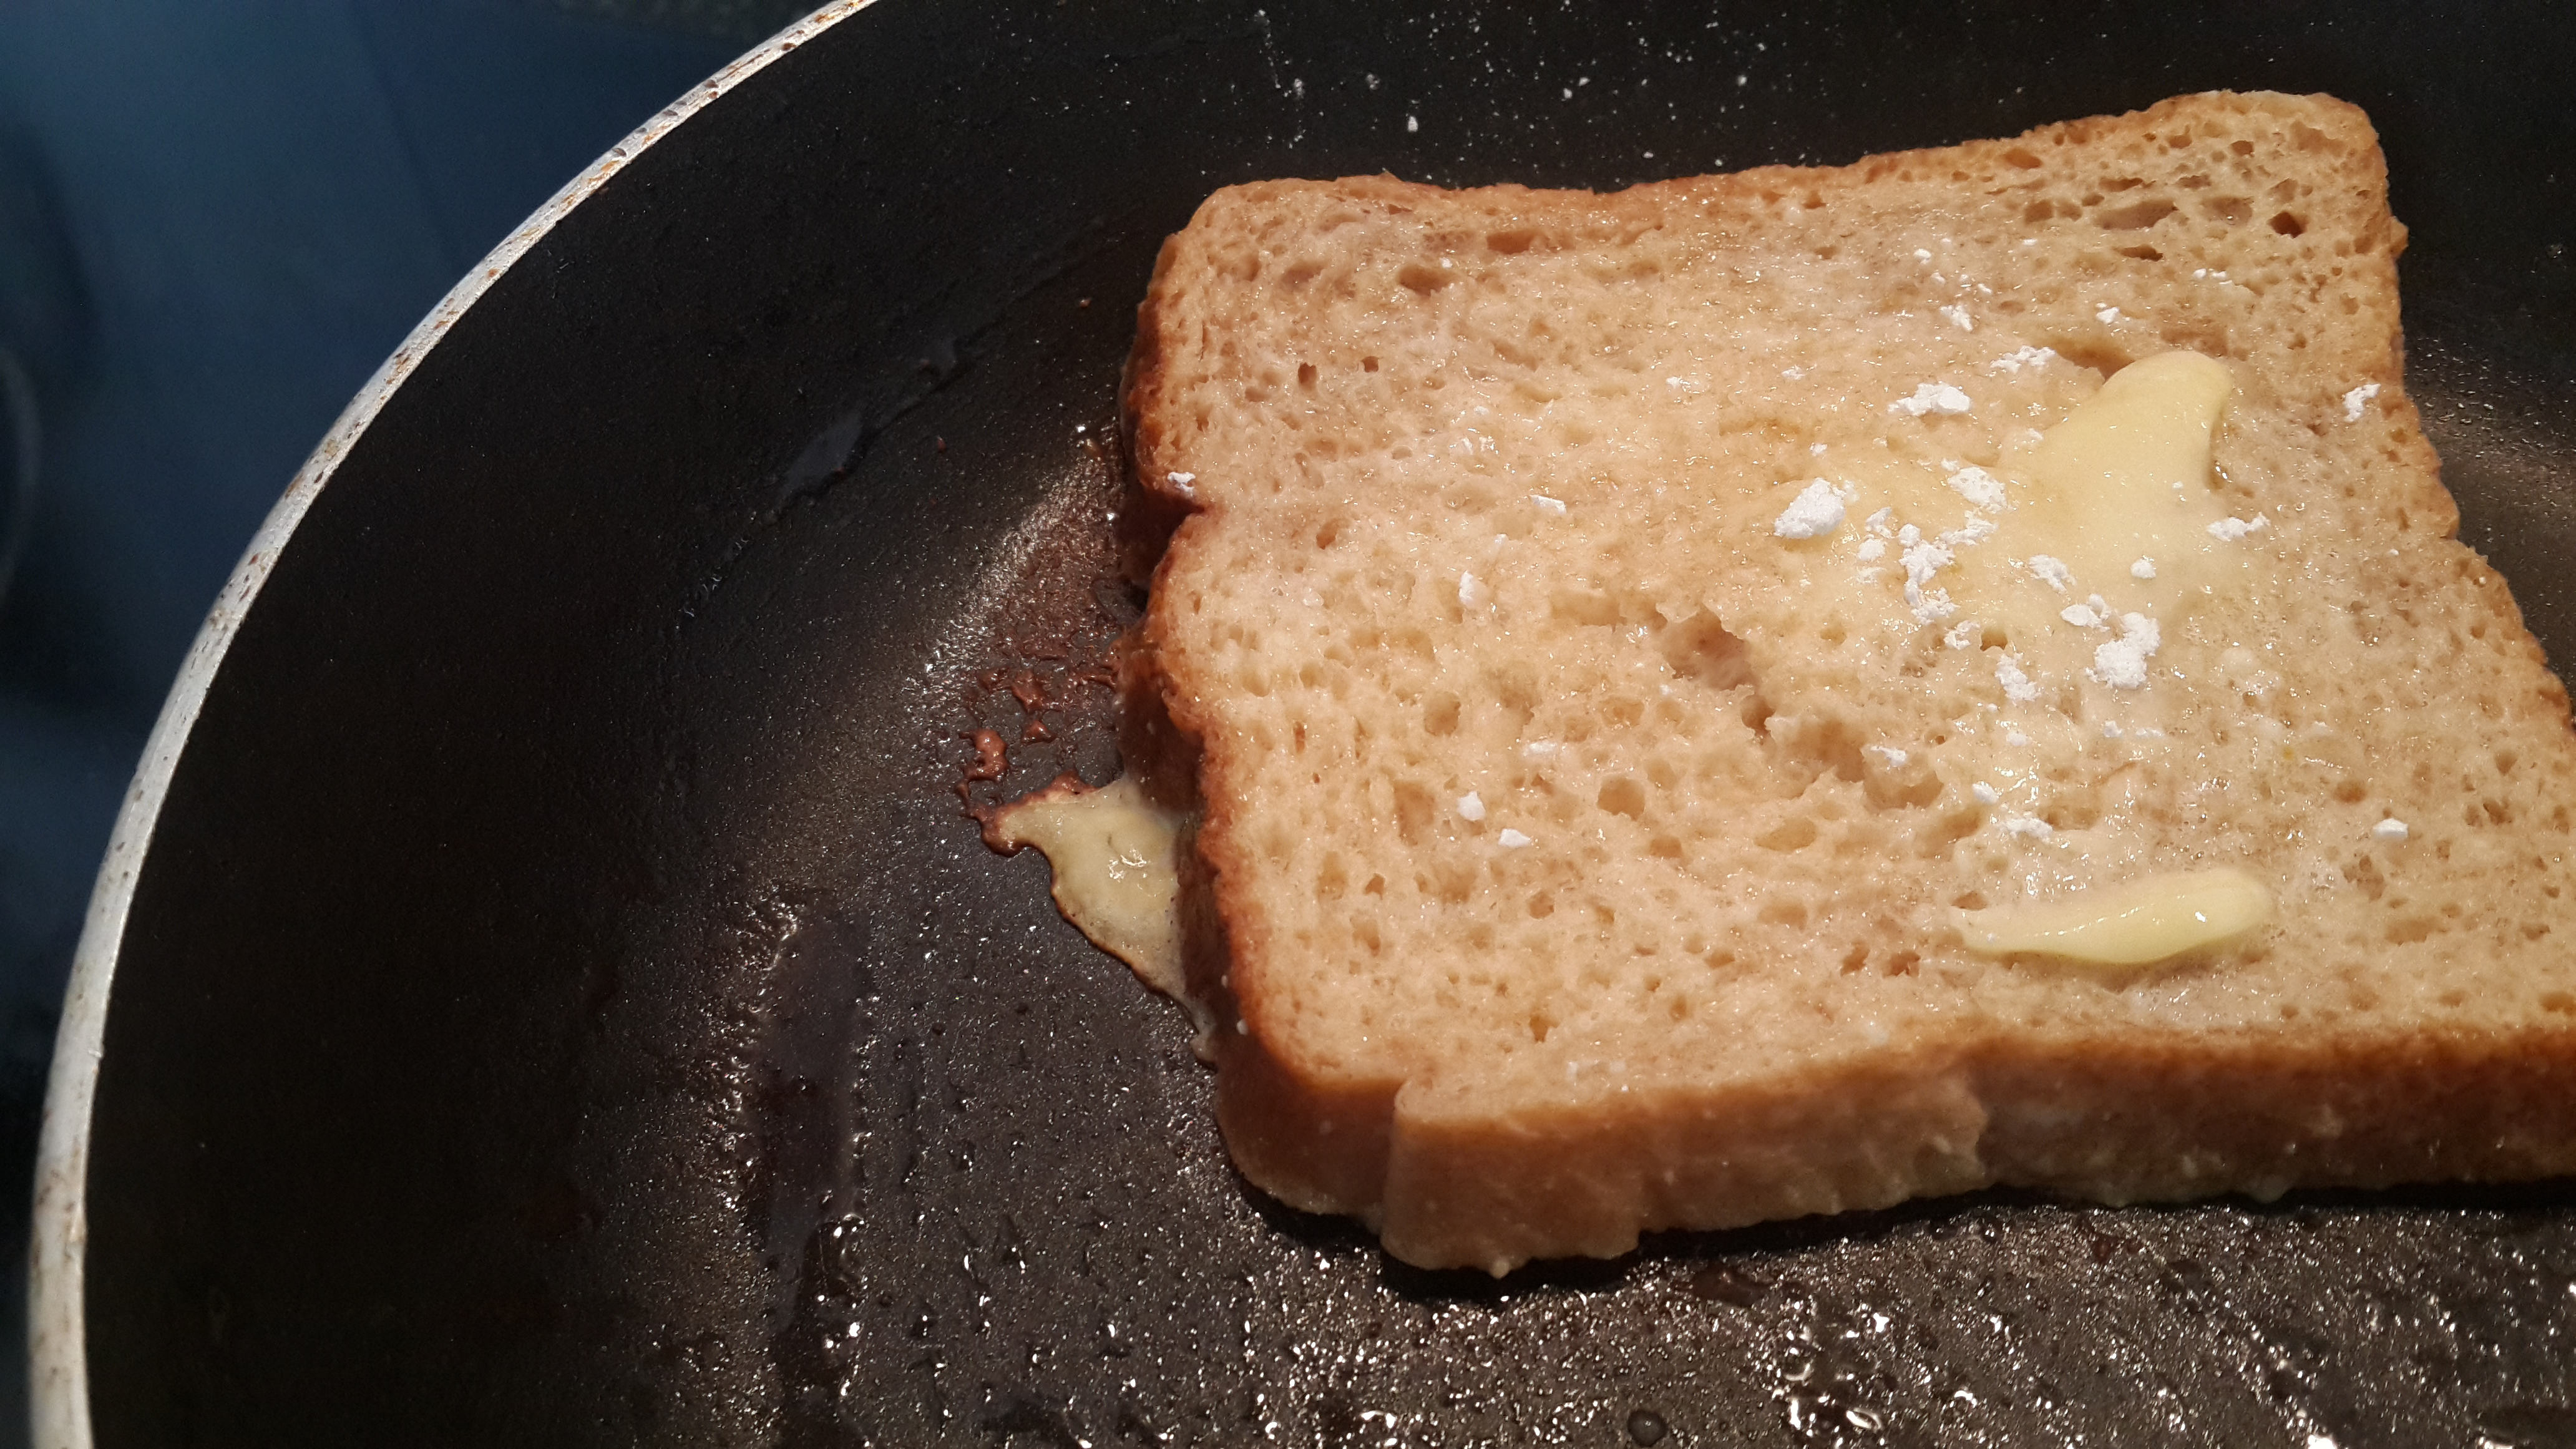 French toast in progress